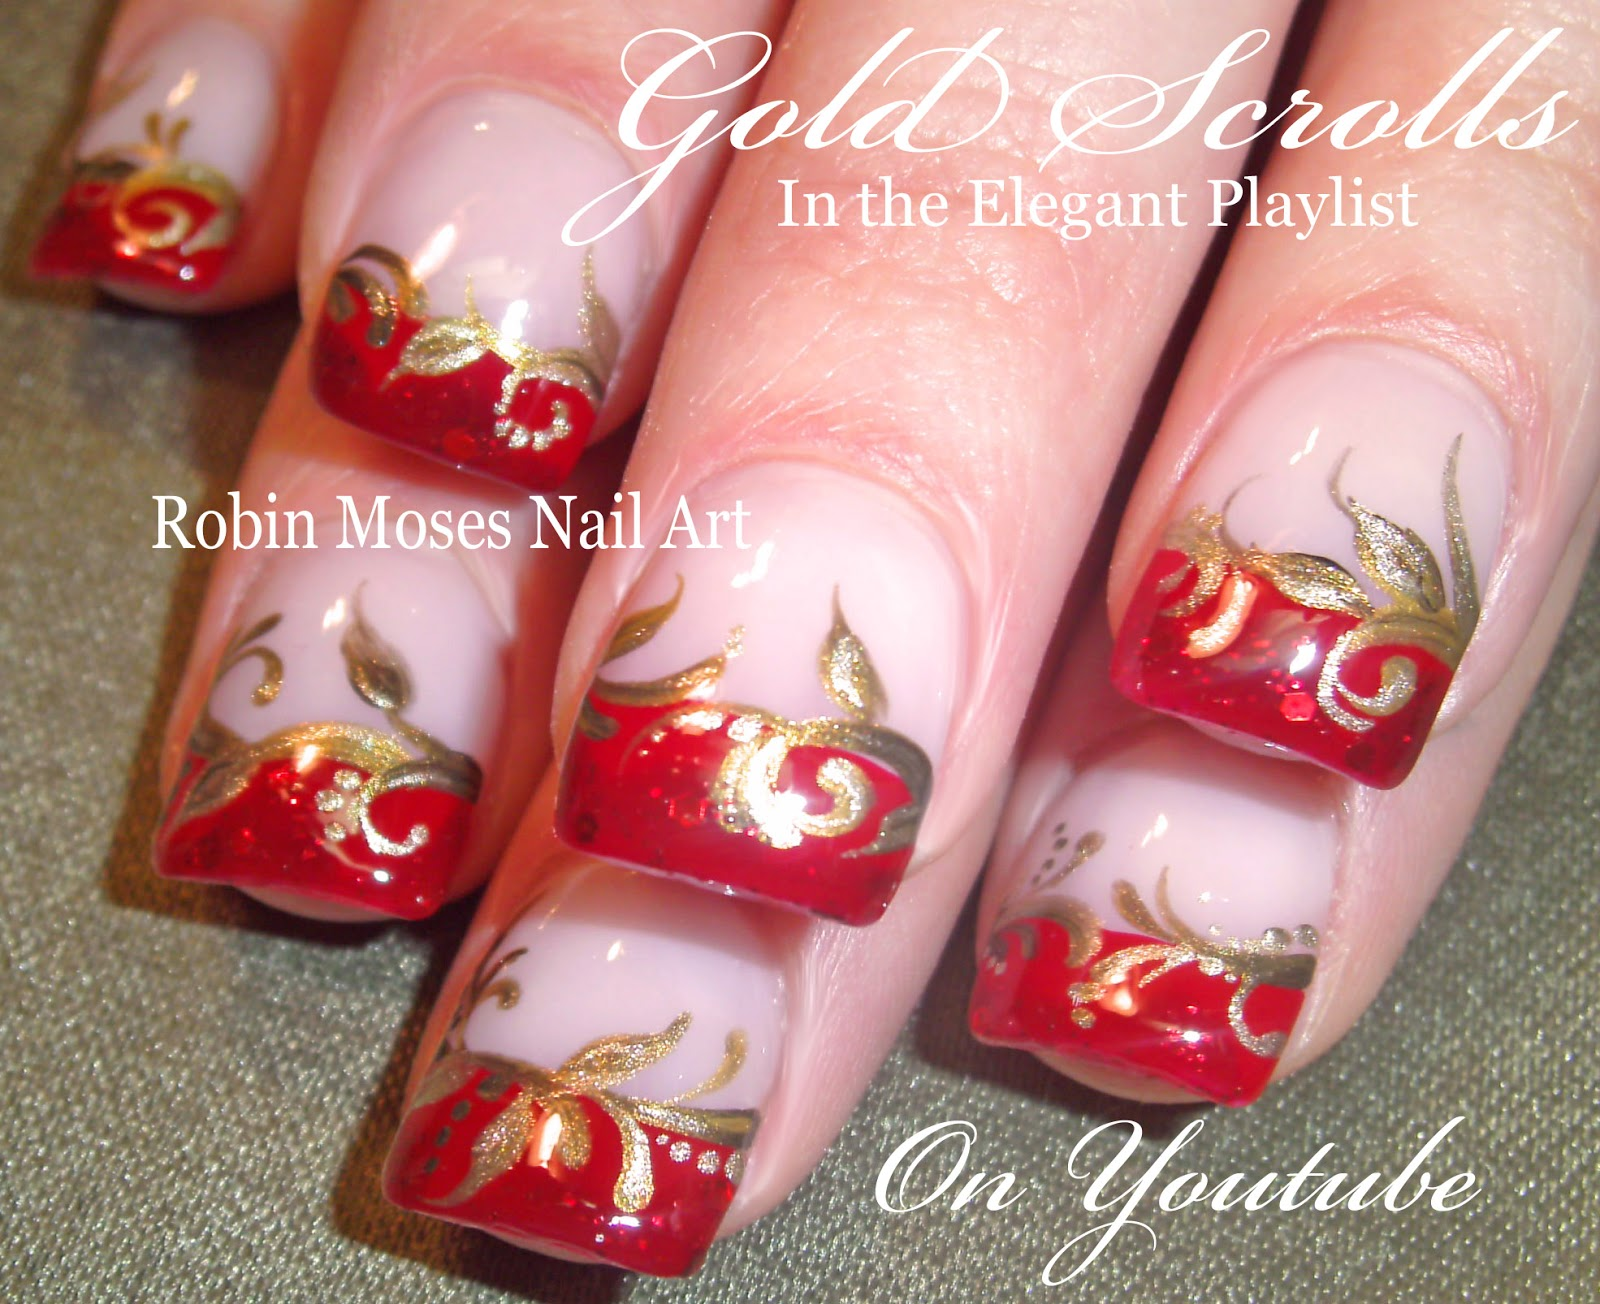 Nail Art by Robin Moses: Christmas Nails! 2 Fun New Designs up for ...